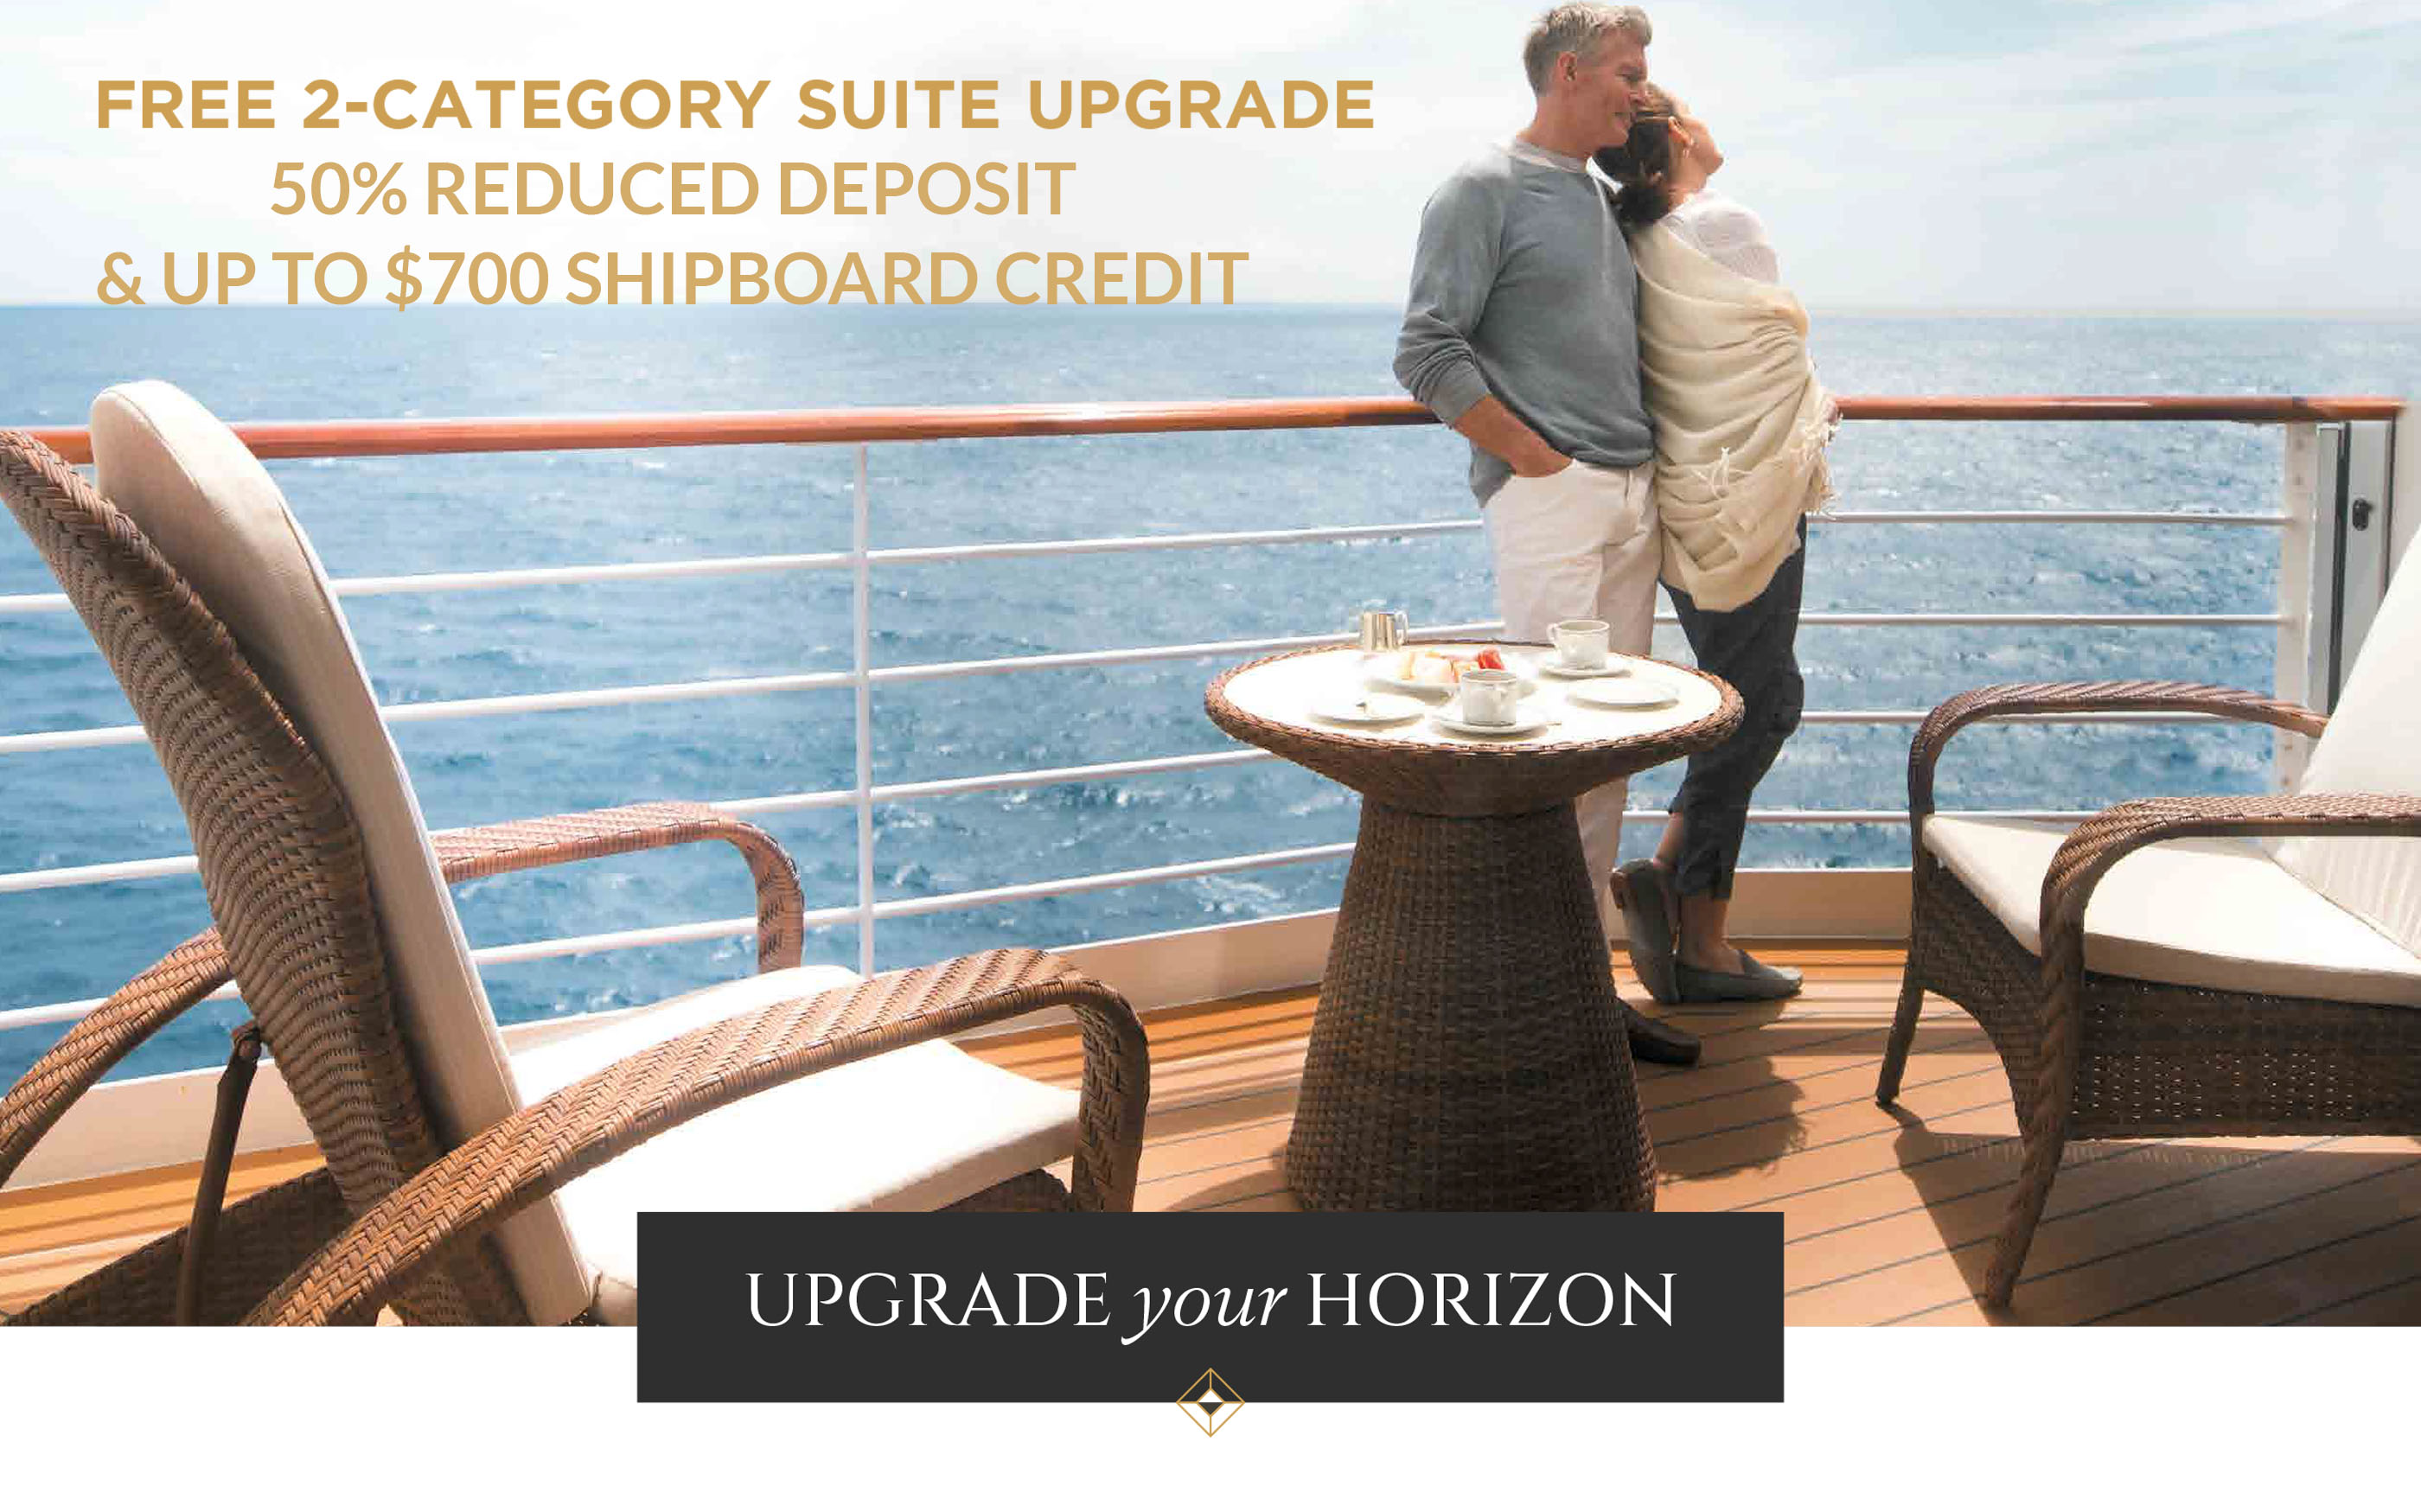 FREE Suite Upgrade, Up to $700 Shipboard Credit & 50% Reduced Deposits with Regent